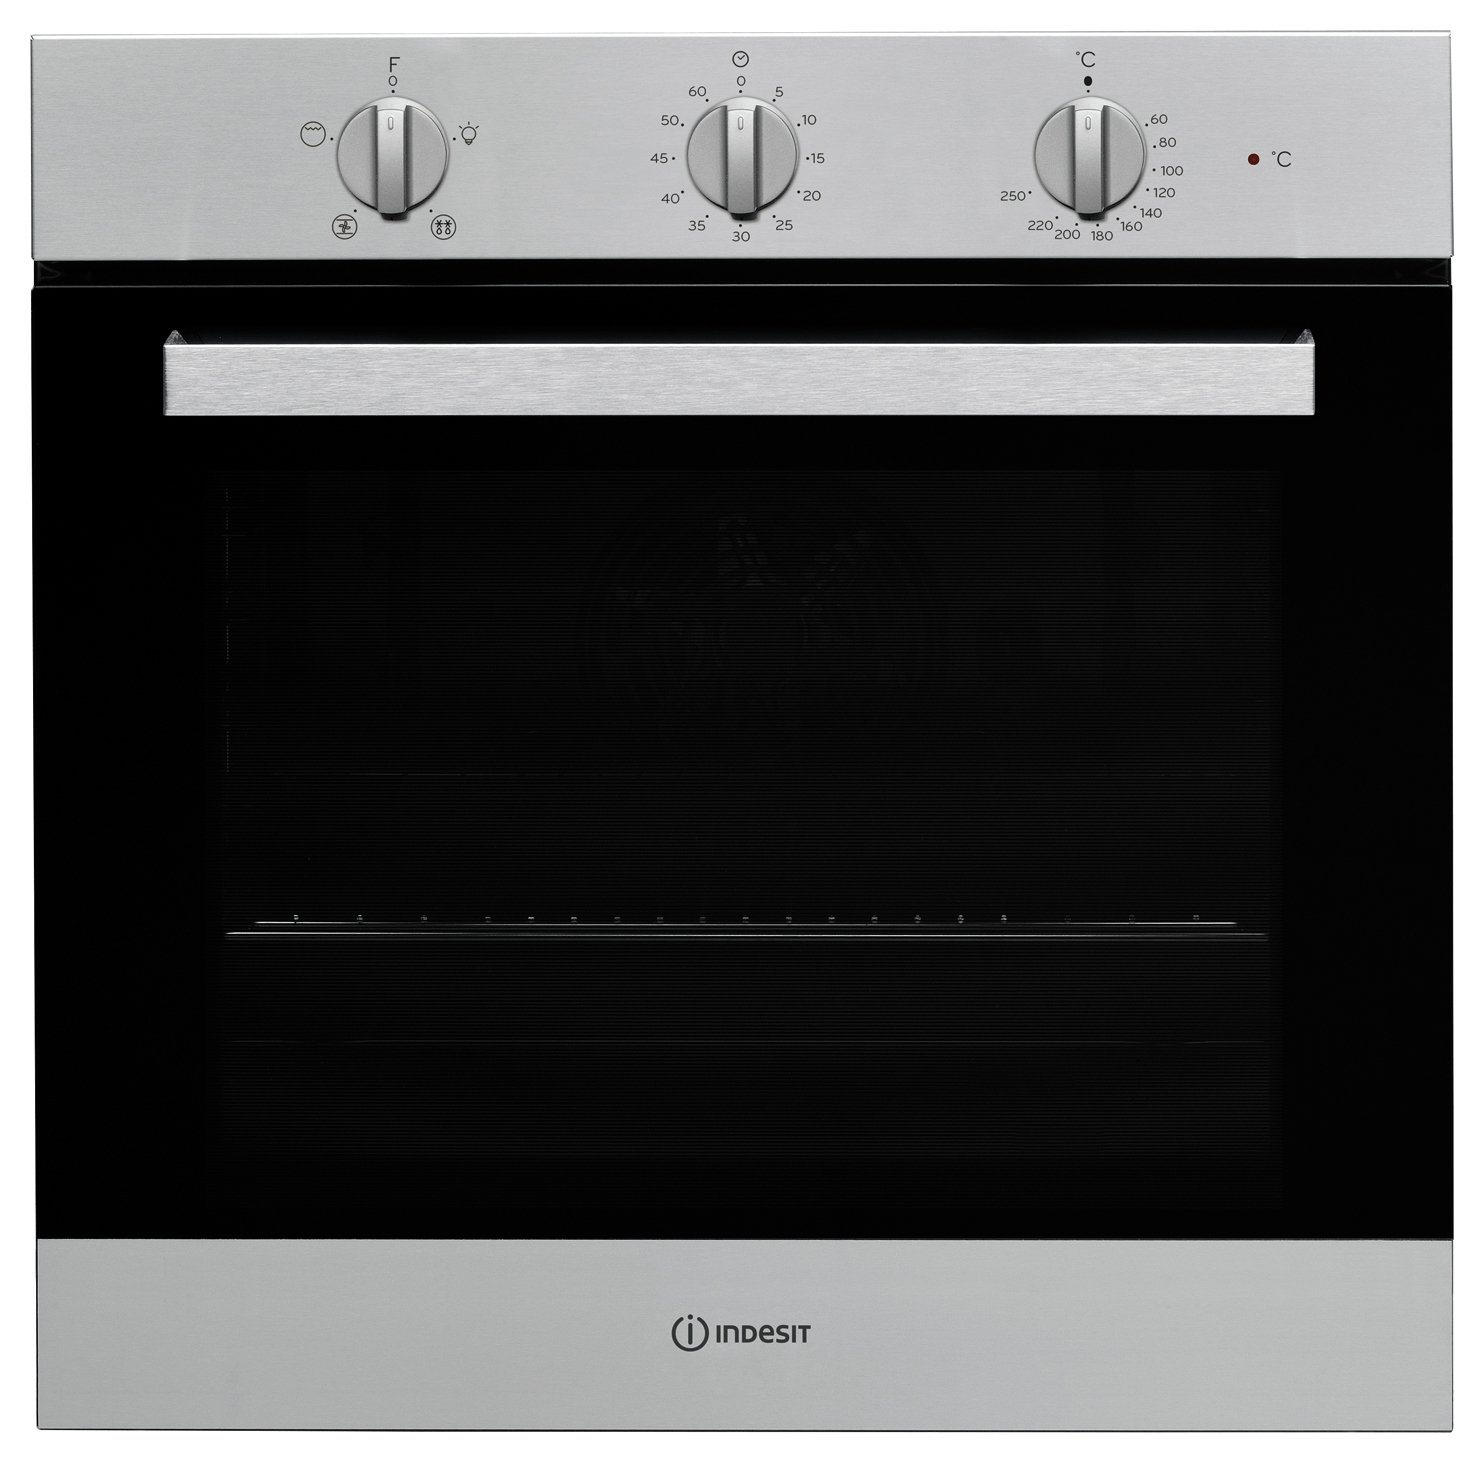 Indesit - IFW6330IX Oven - Stainless Steel